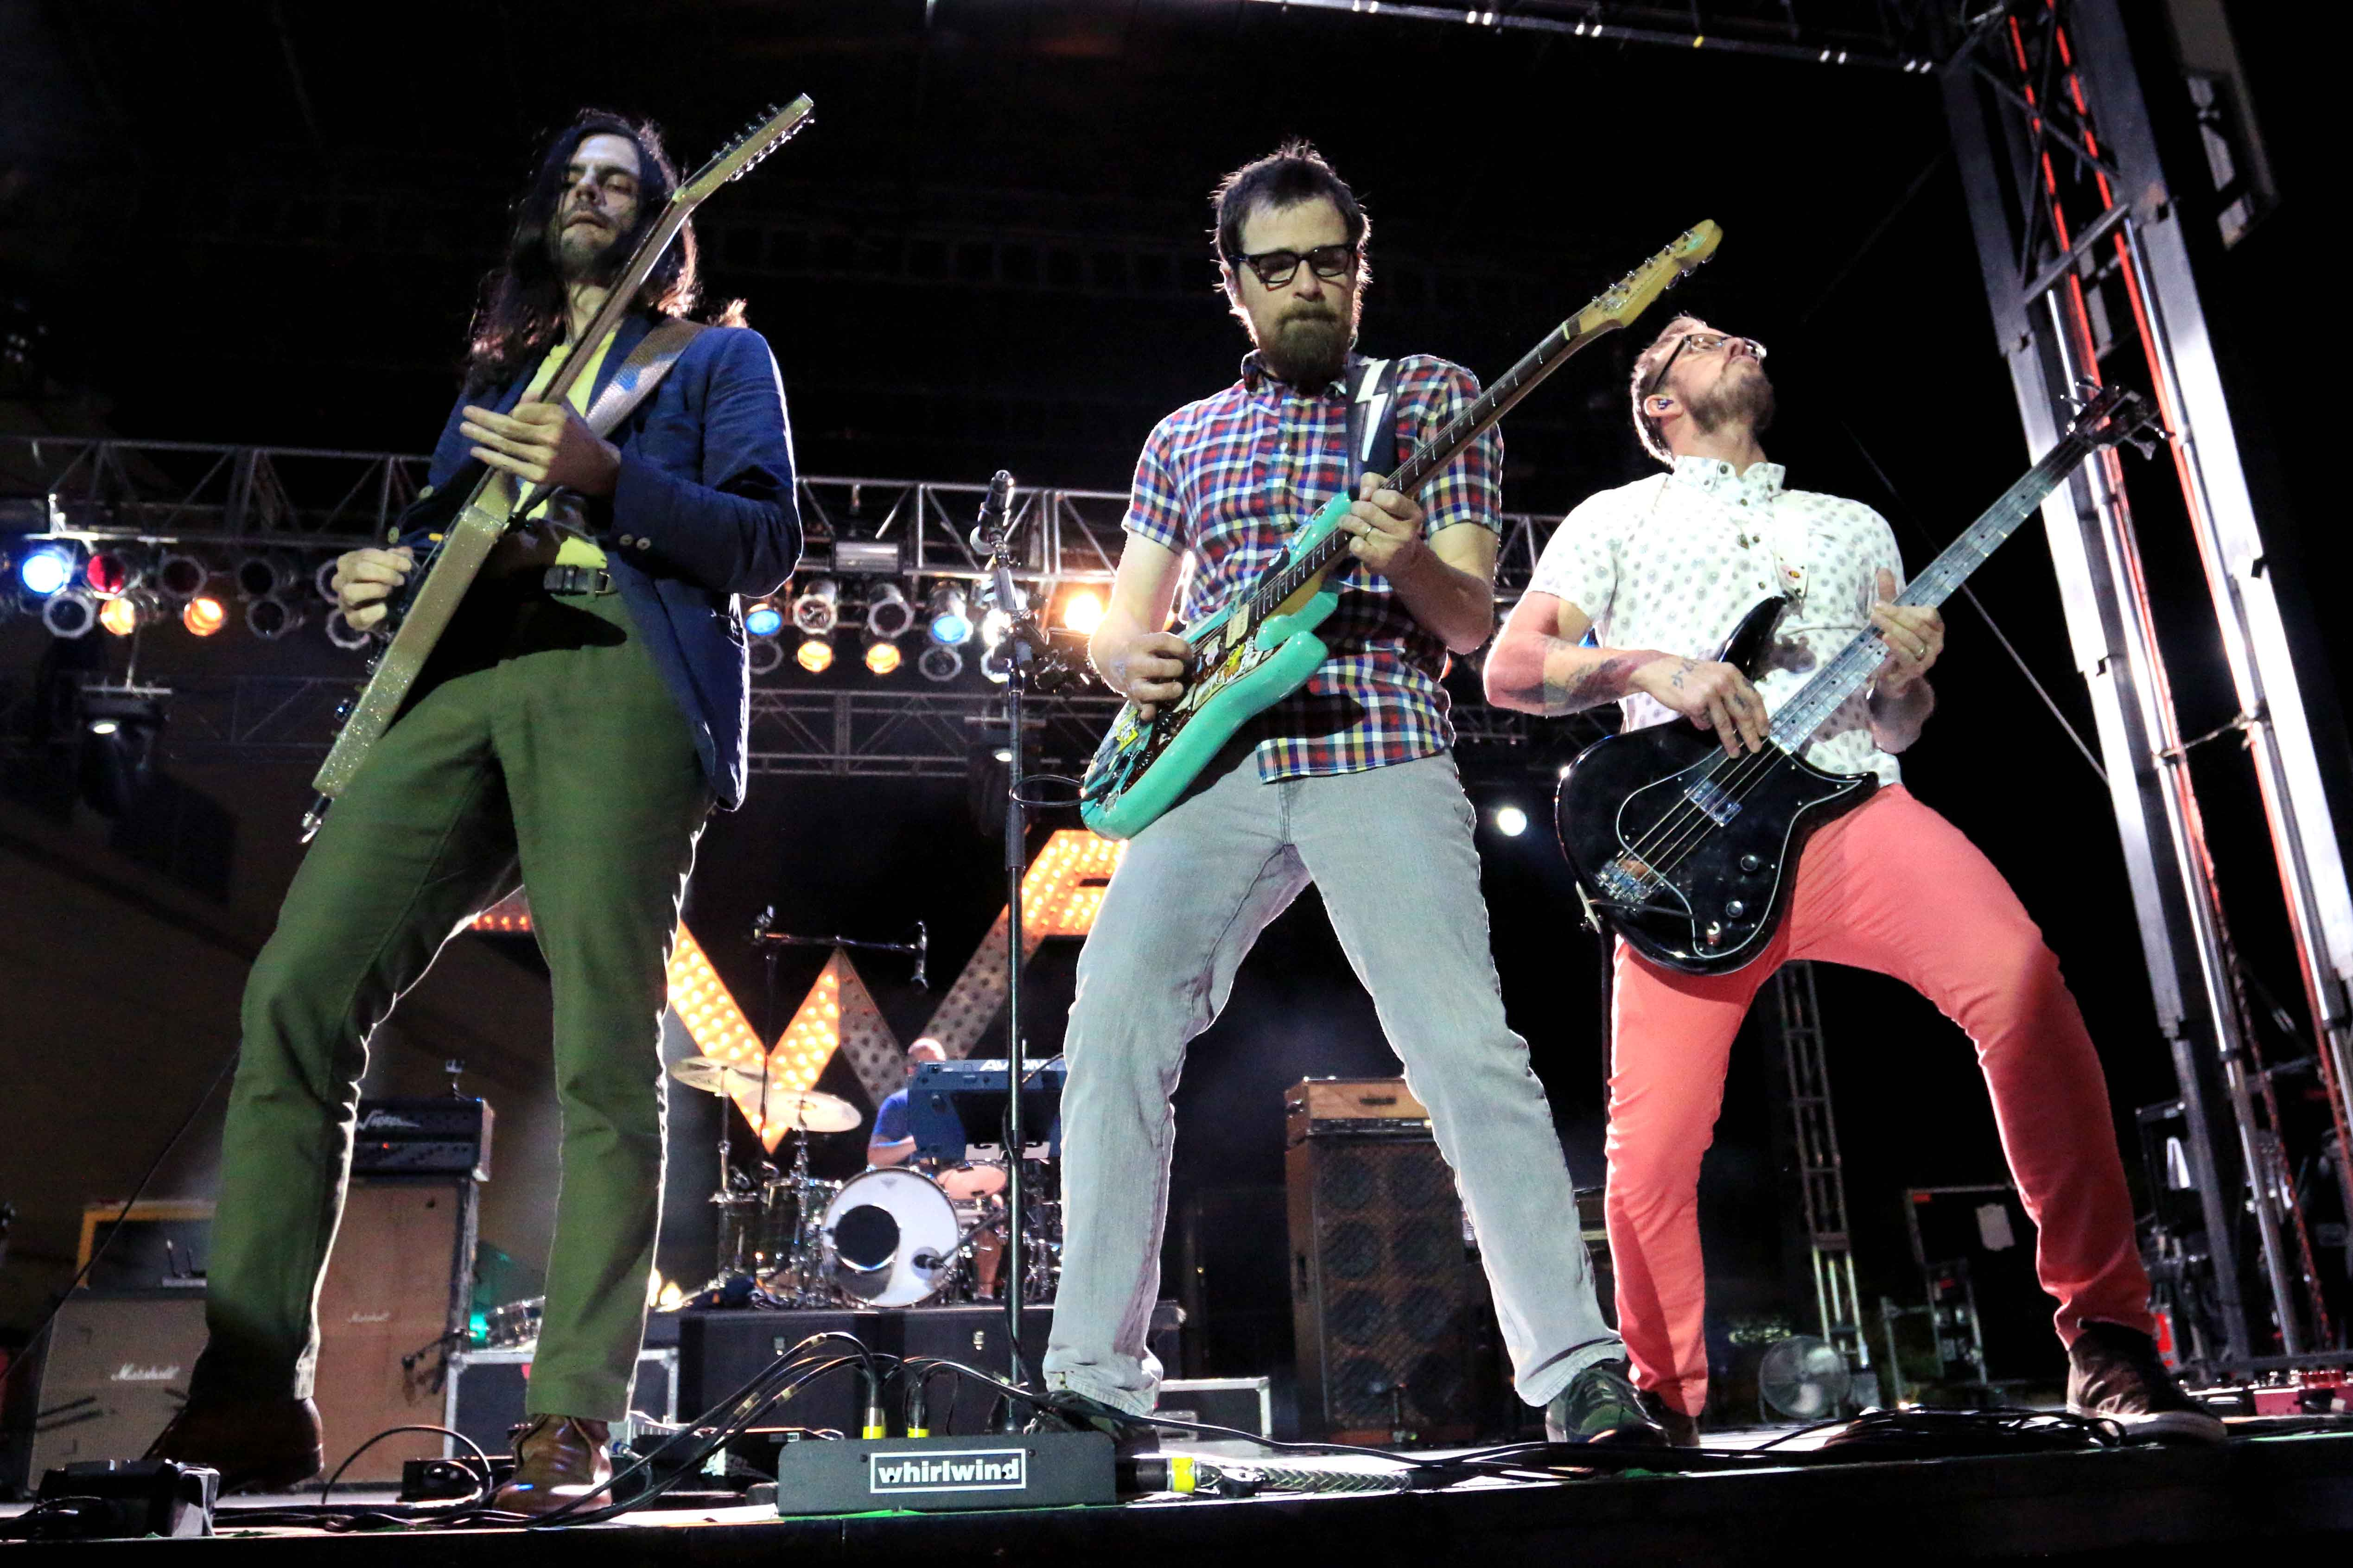 Weezer performs at Streetfest 2015.